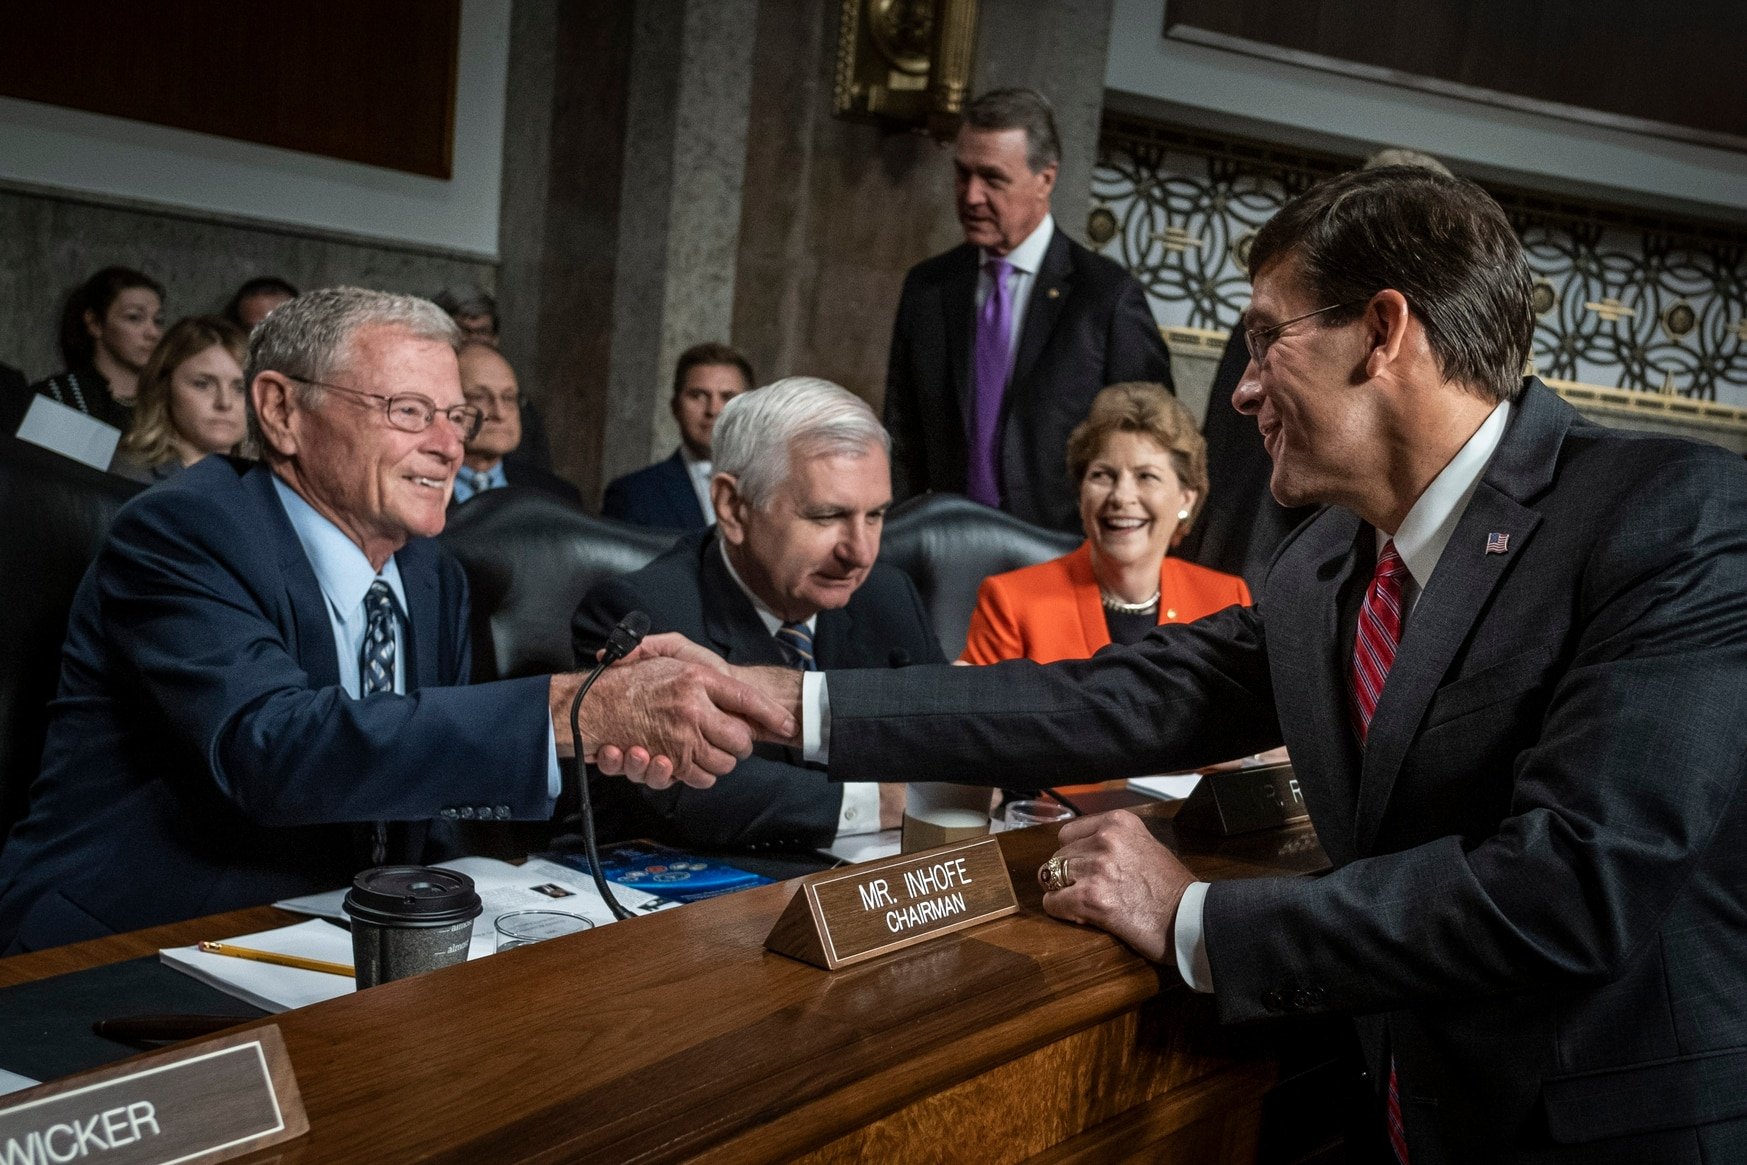 Secretary of Defense nominee, Mark Esper, shakes hands with Committee Chairman James Inhofe, R-Okal., before he testifies before the Senate Armed Services Committee during his confirmation hearing on July 16, 2019 in Washington, D.C. (Photo by Pete Marovich/Getty Images)